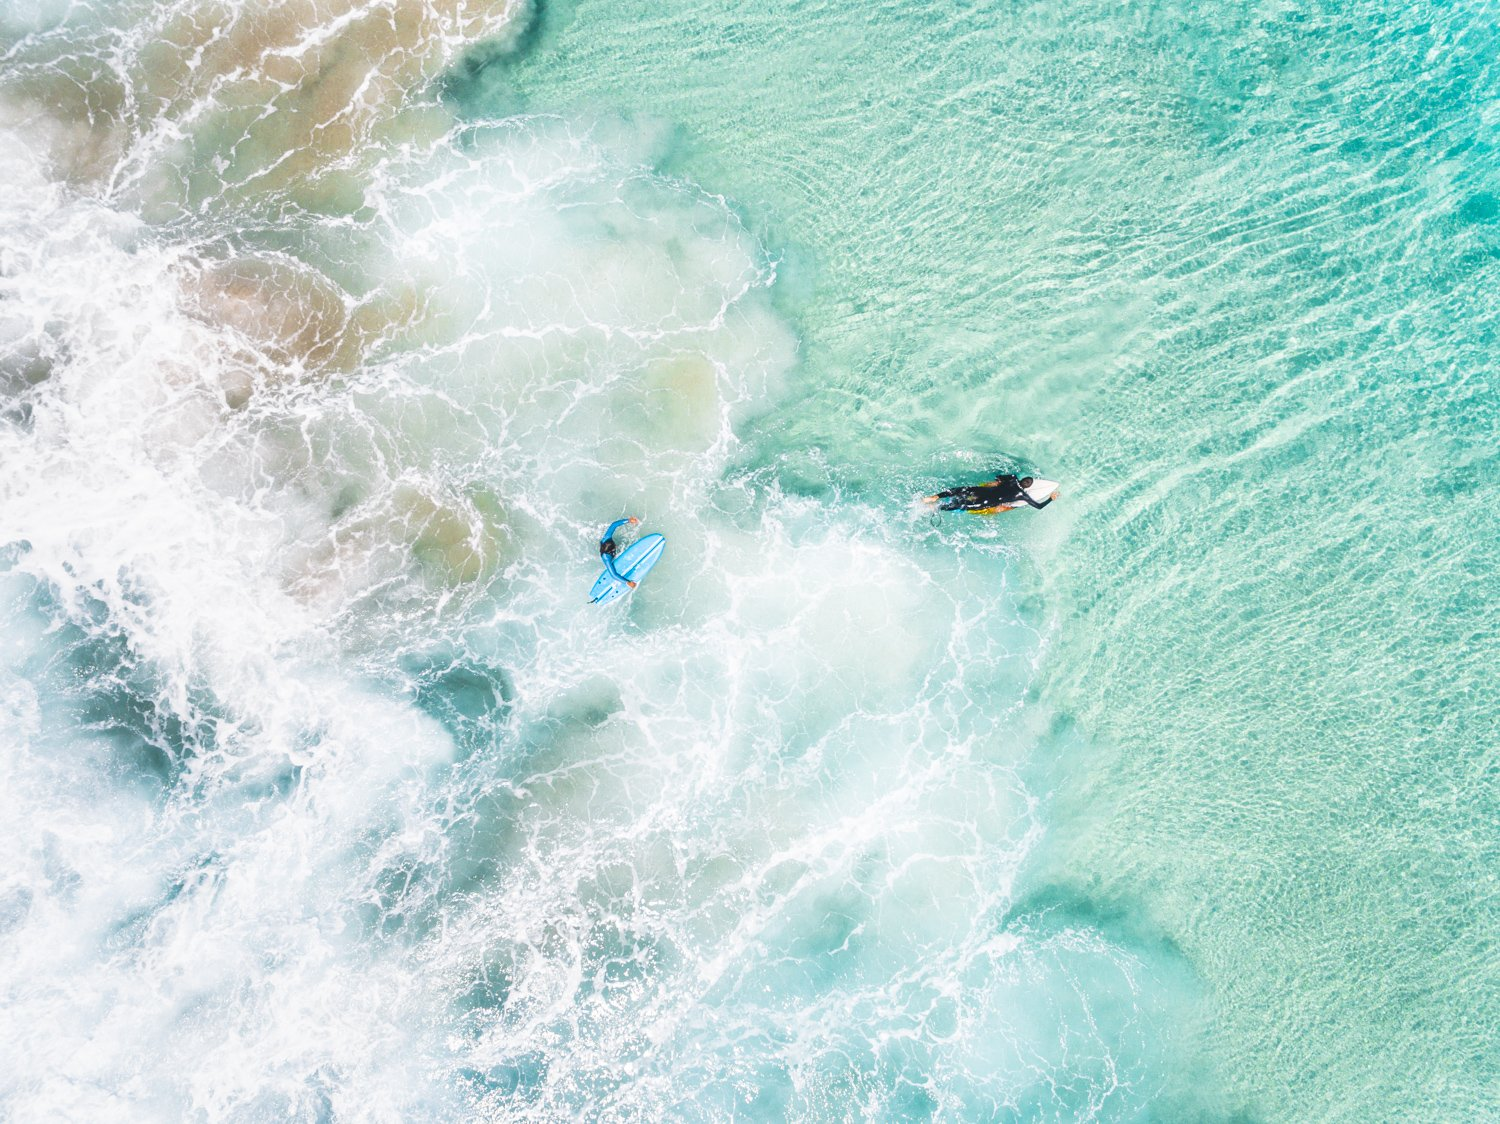 Aerial view of two surfers paddling in turquoise water and foam